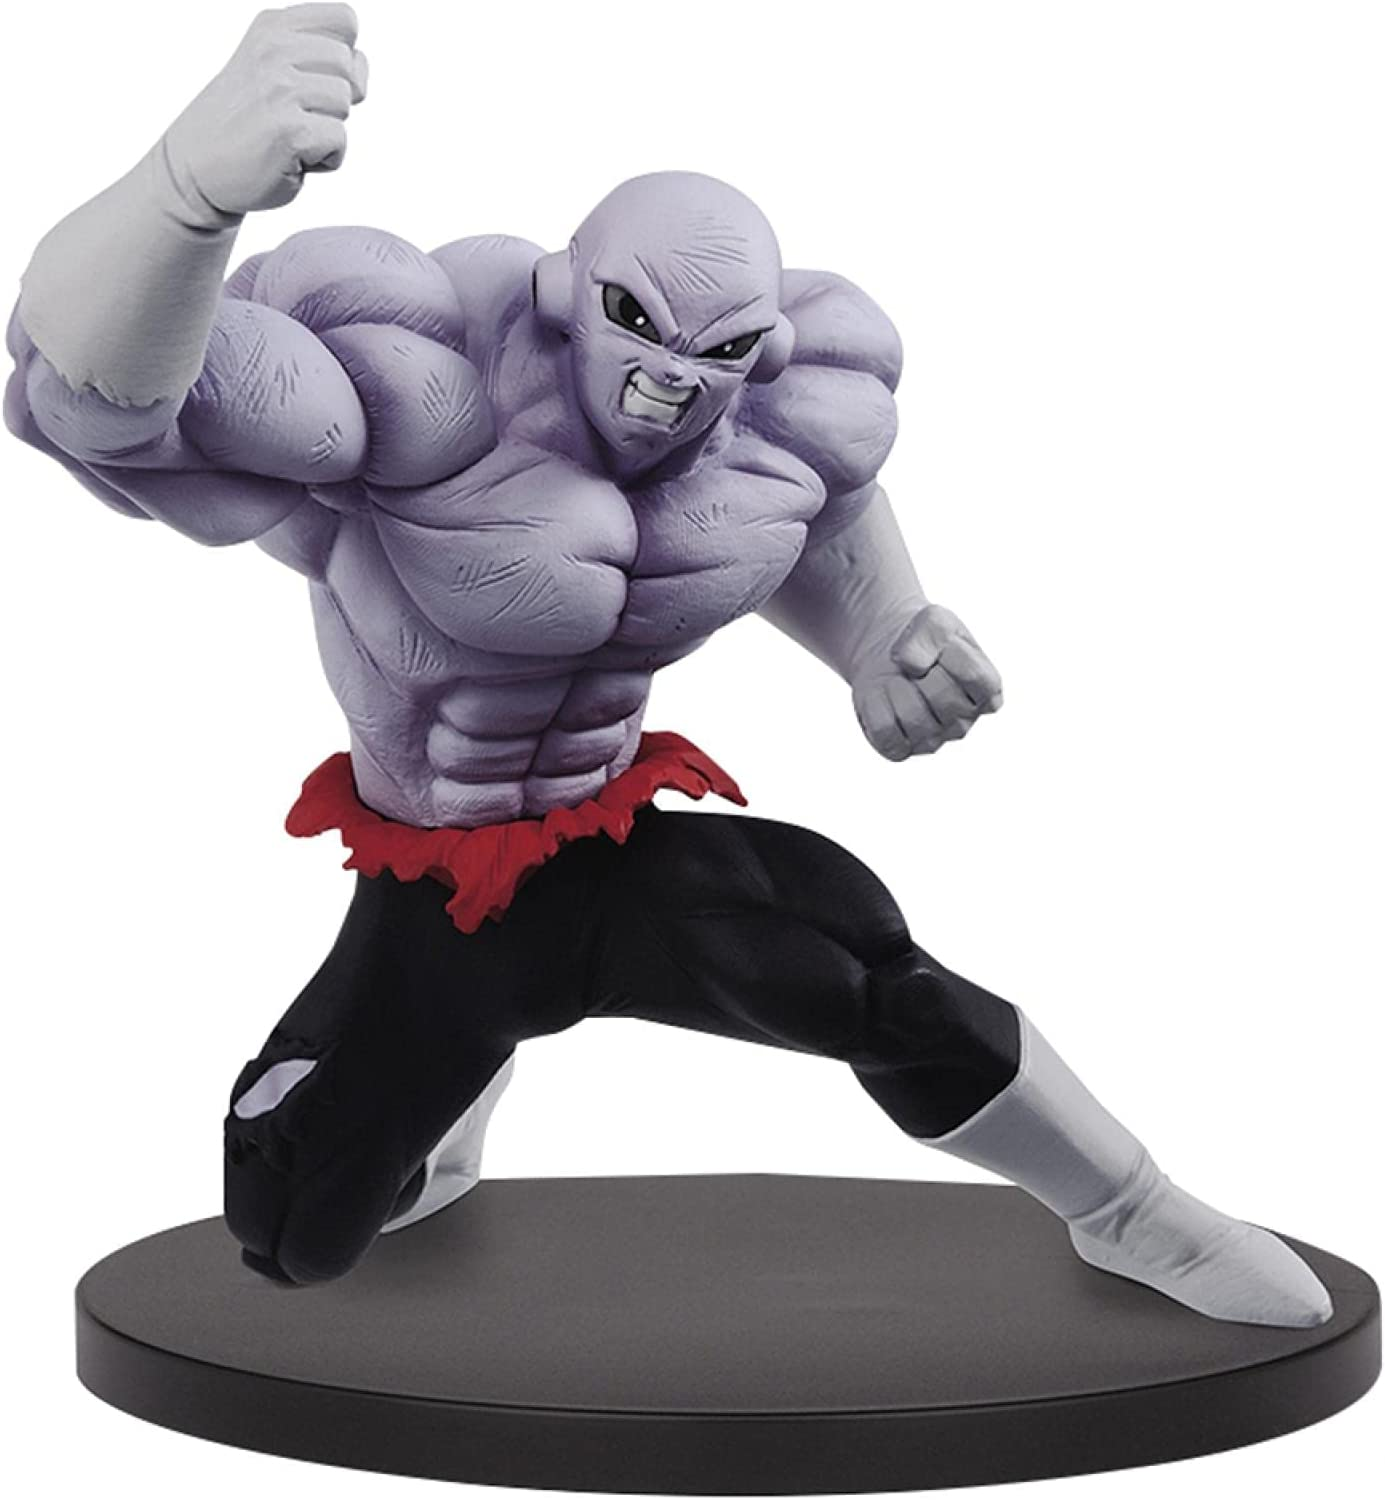 Free shipping on posting reviews 16Cm Dragon Ball Jiren Super Warrior Sale Special Price 2 Lie Den Universe Fighting